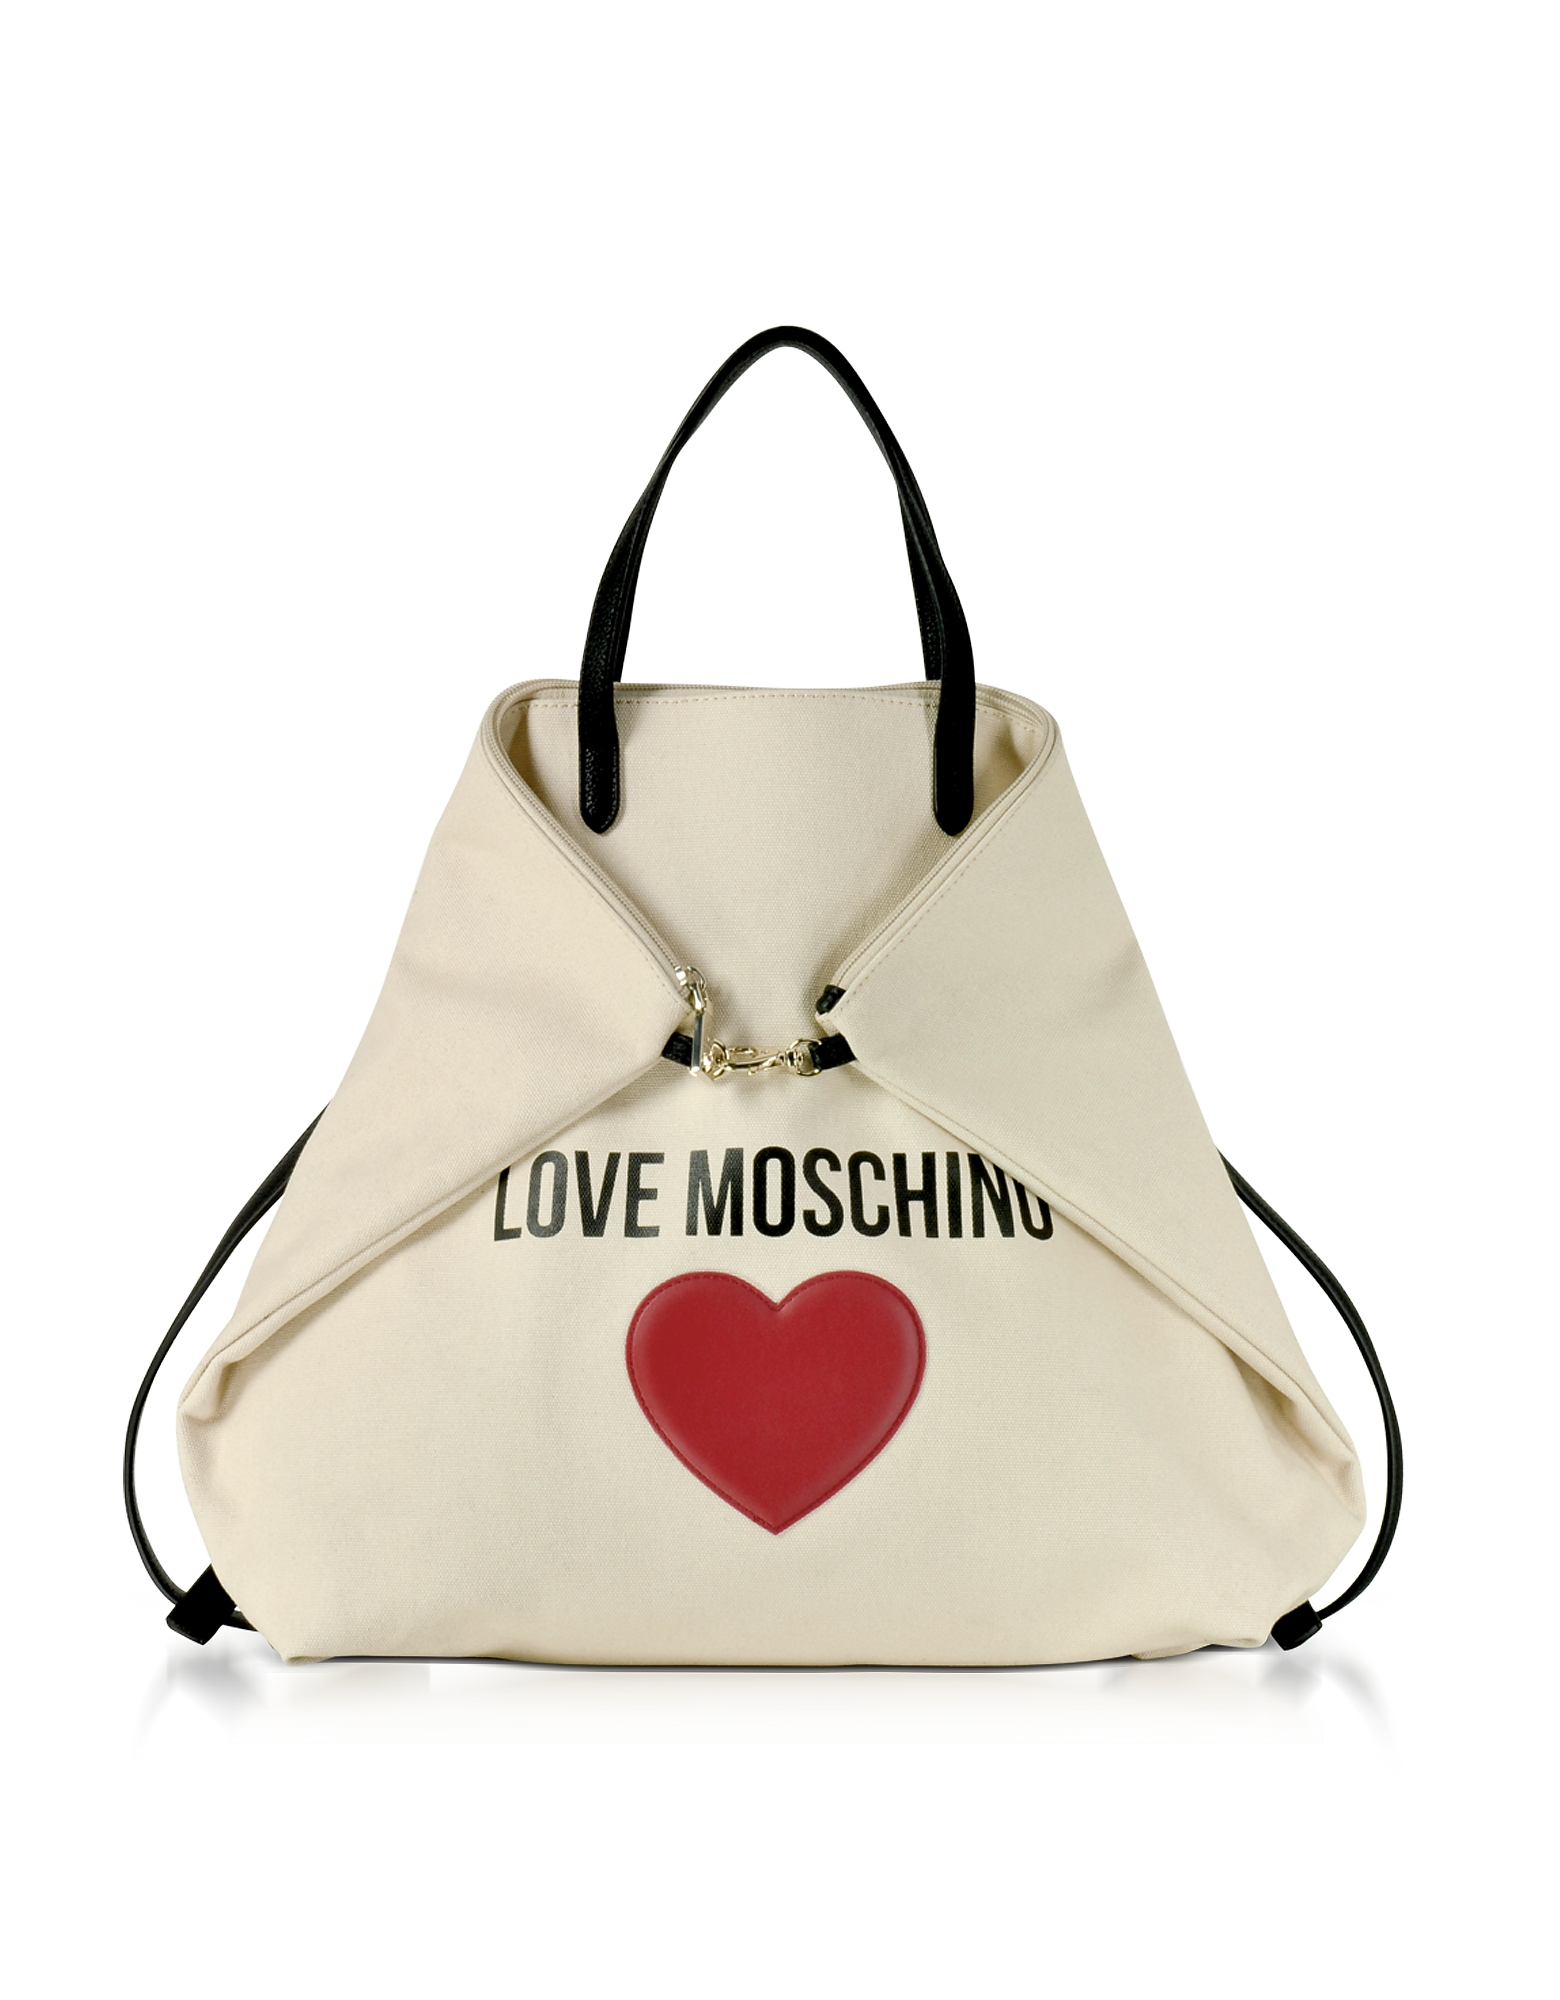 Love Moschino Handbags, Love Moschino & Heart Cotton Convertible Tote/Backpack